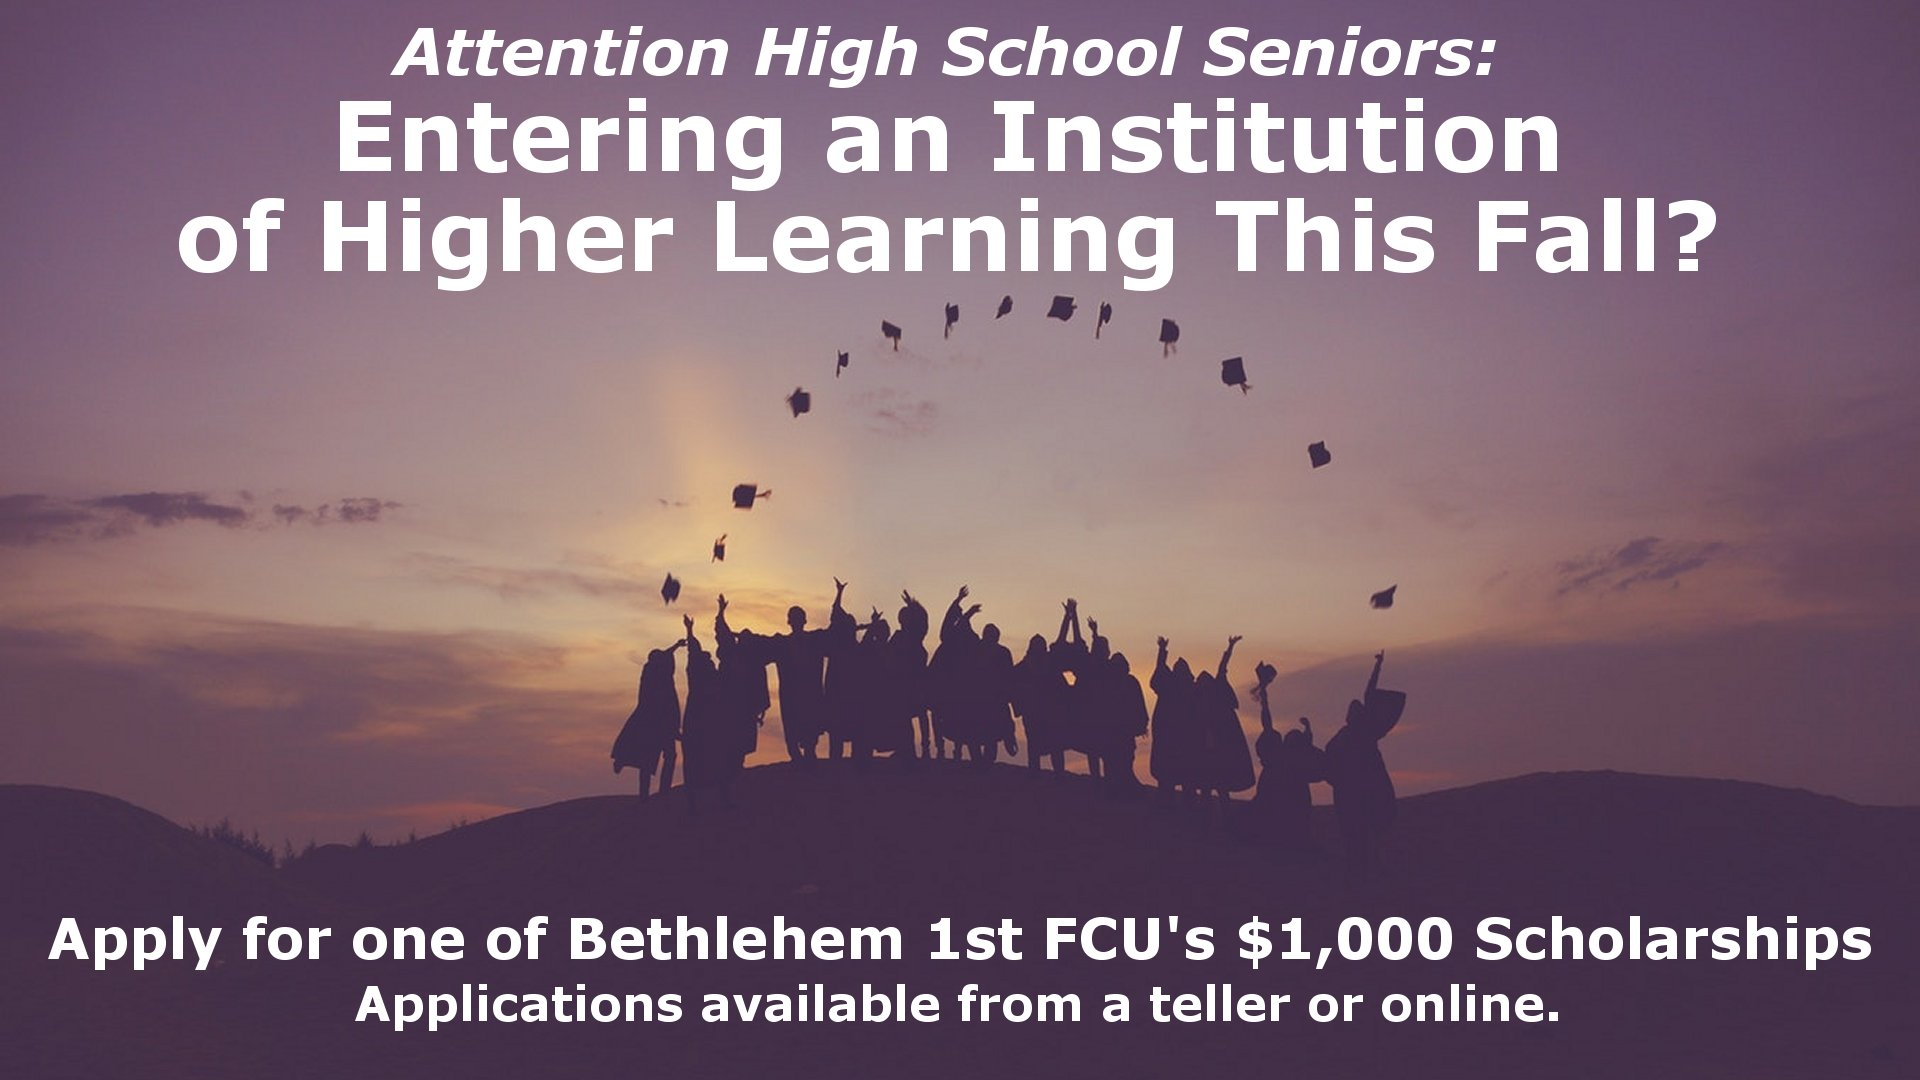 High School Seniors: Apply for a chance to receive one of three $1,000 scholarships from Bethlehem 1st Federal Credit Union. Click here for the application.